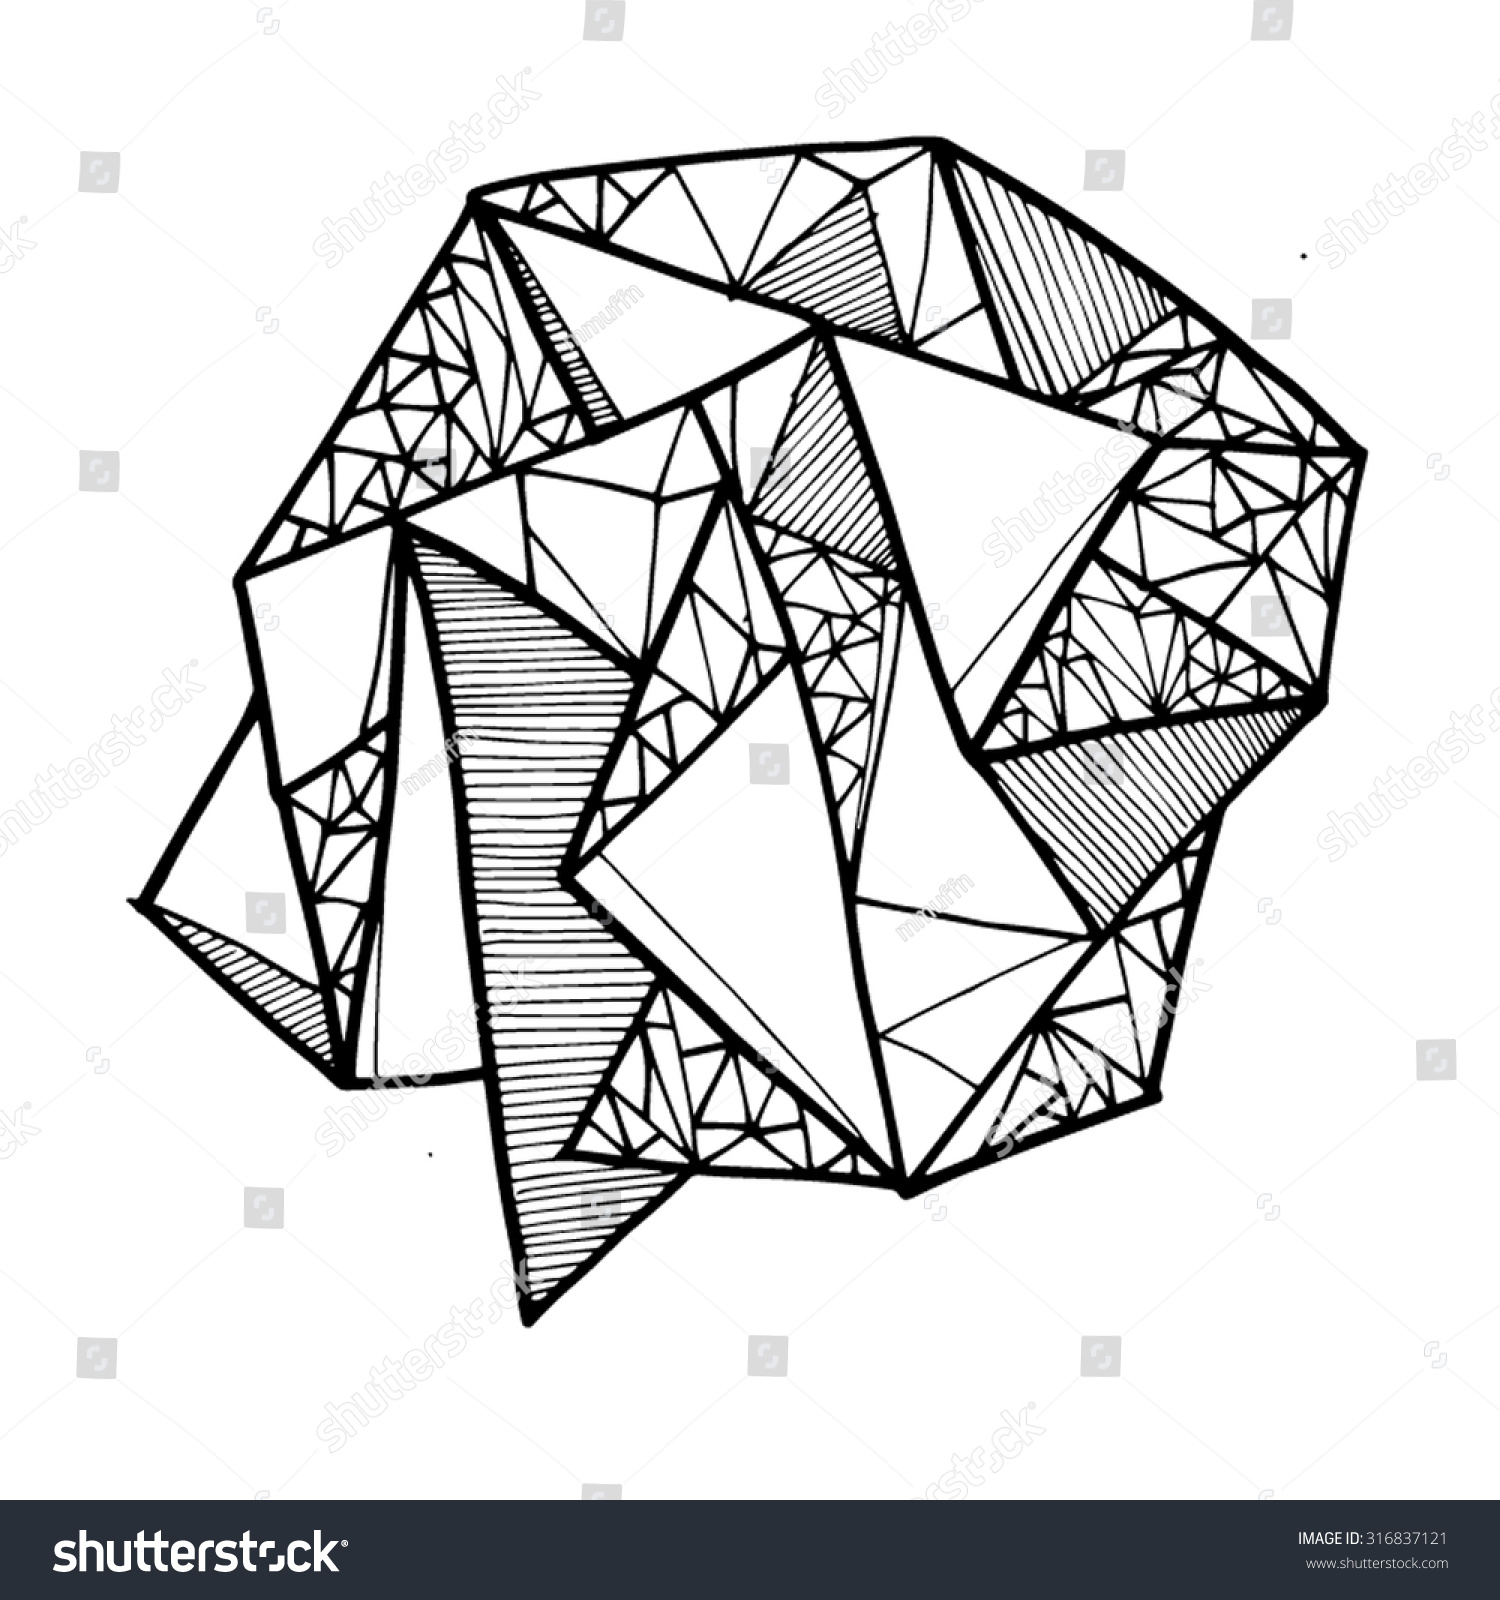 Line And Shape Art : Geometric shape lines lineart shapes line stock vector